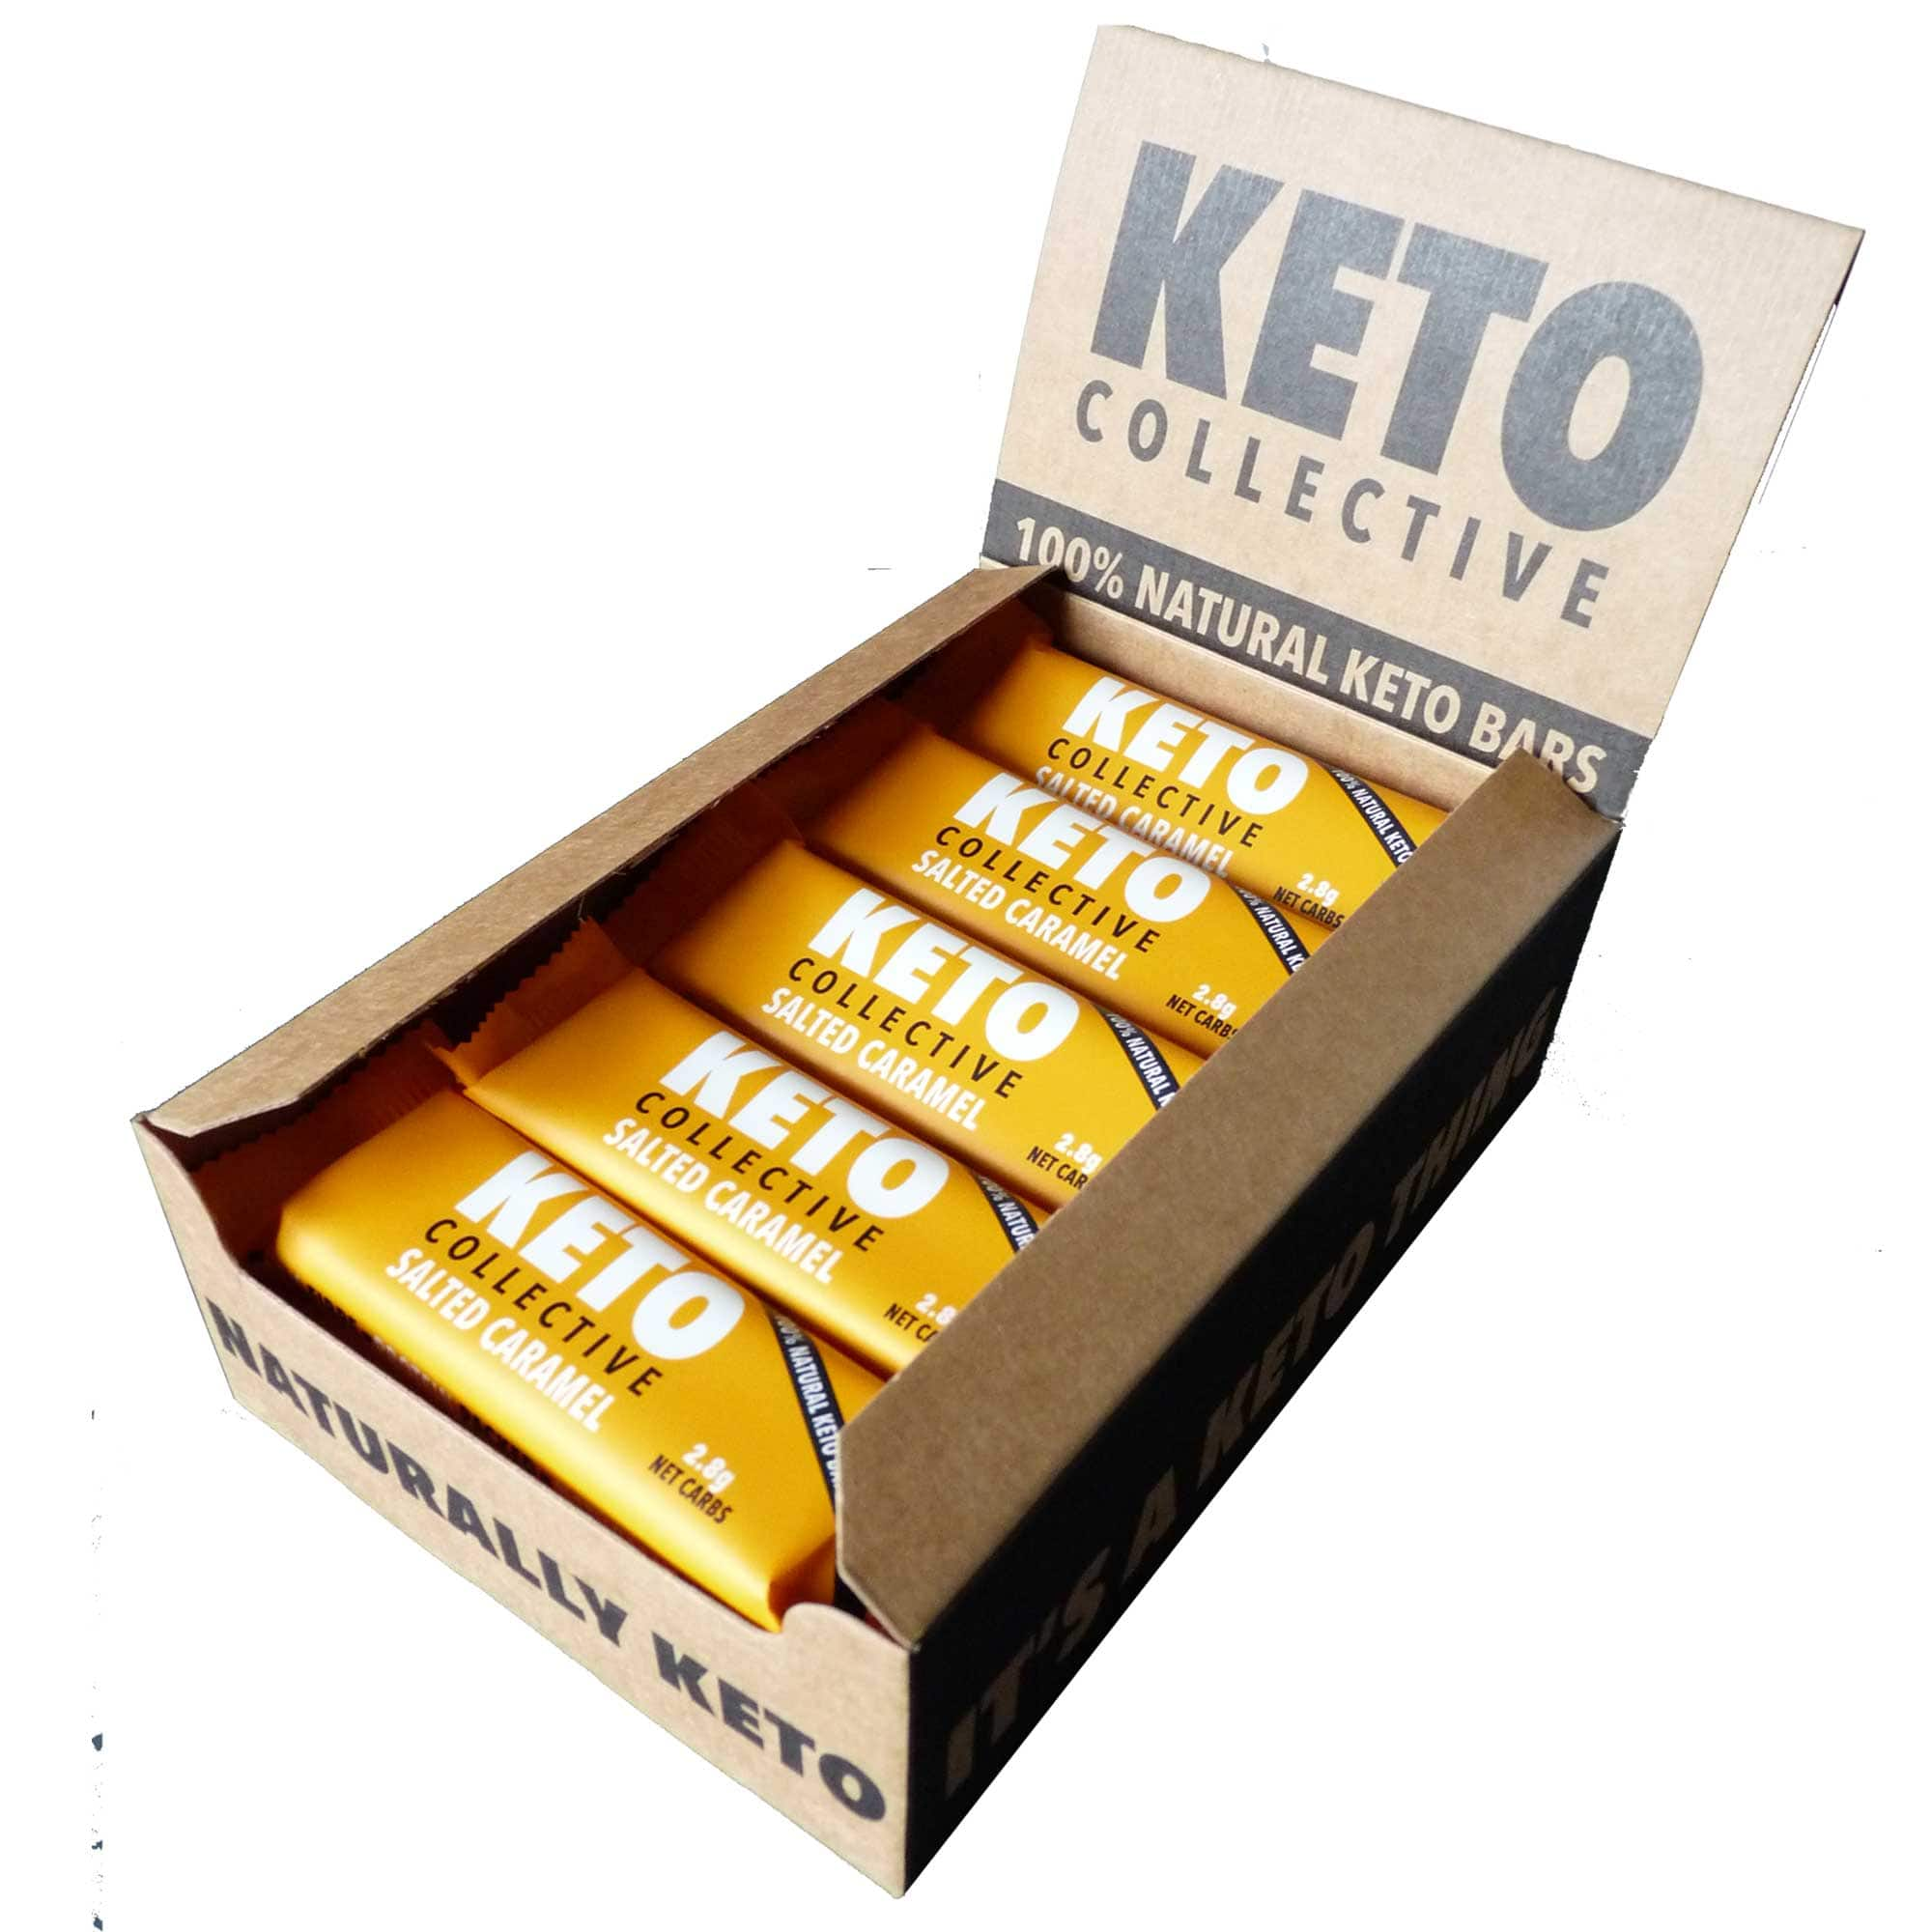 Wholesale Case -  SALTED CARAMEL KETO BARS ( 8 x 15 x 40g) - £100 ex VAT.